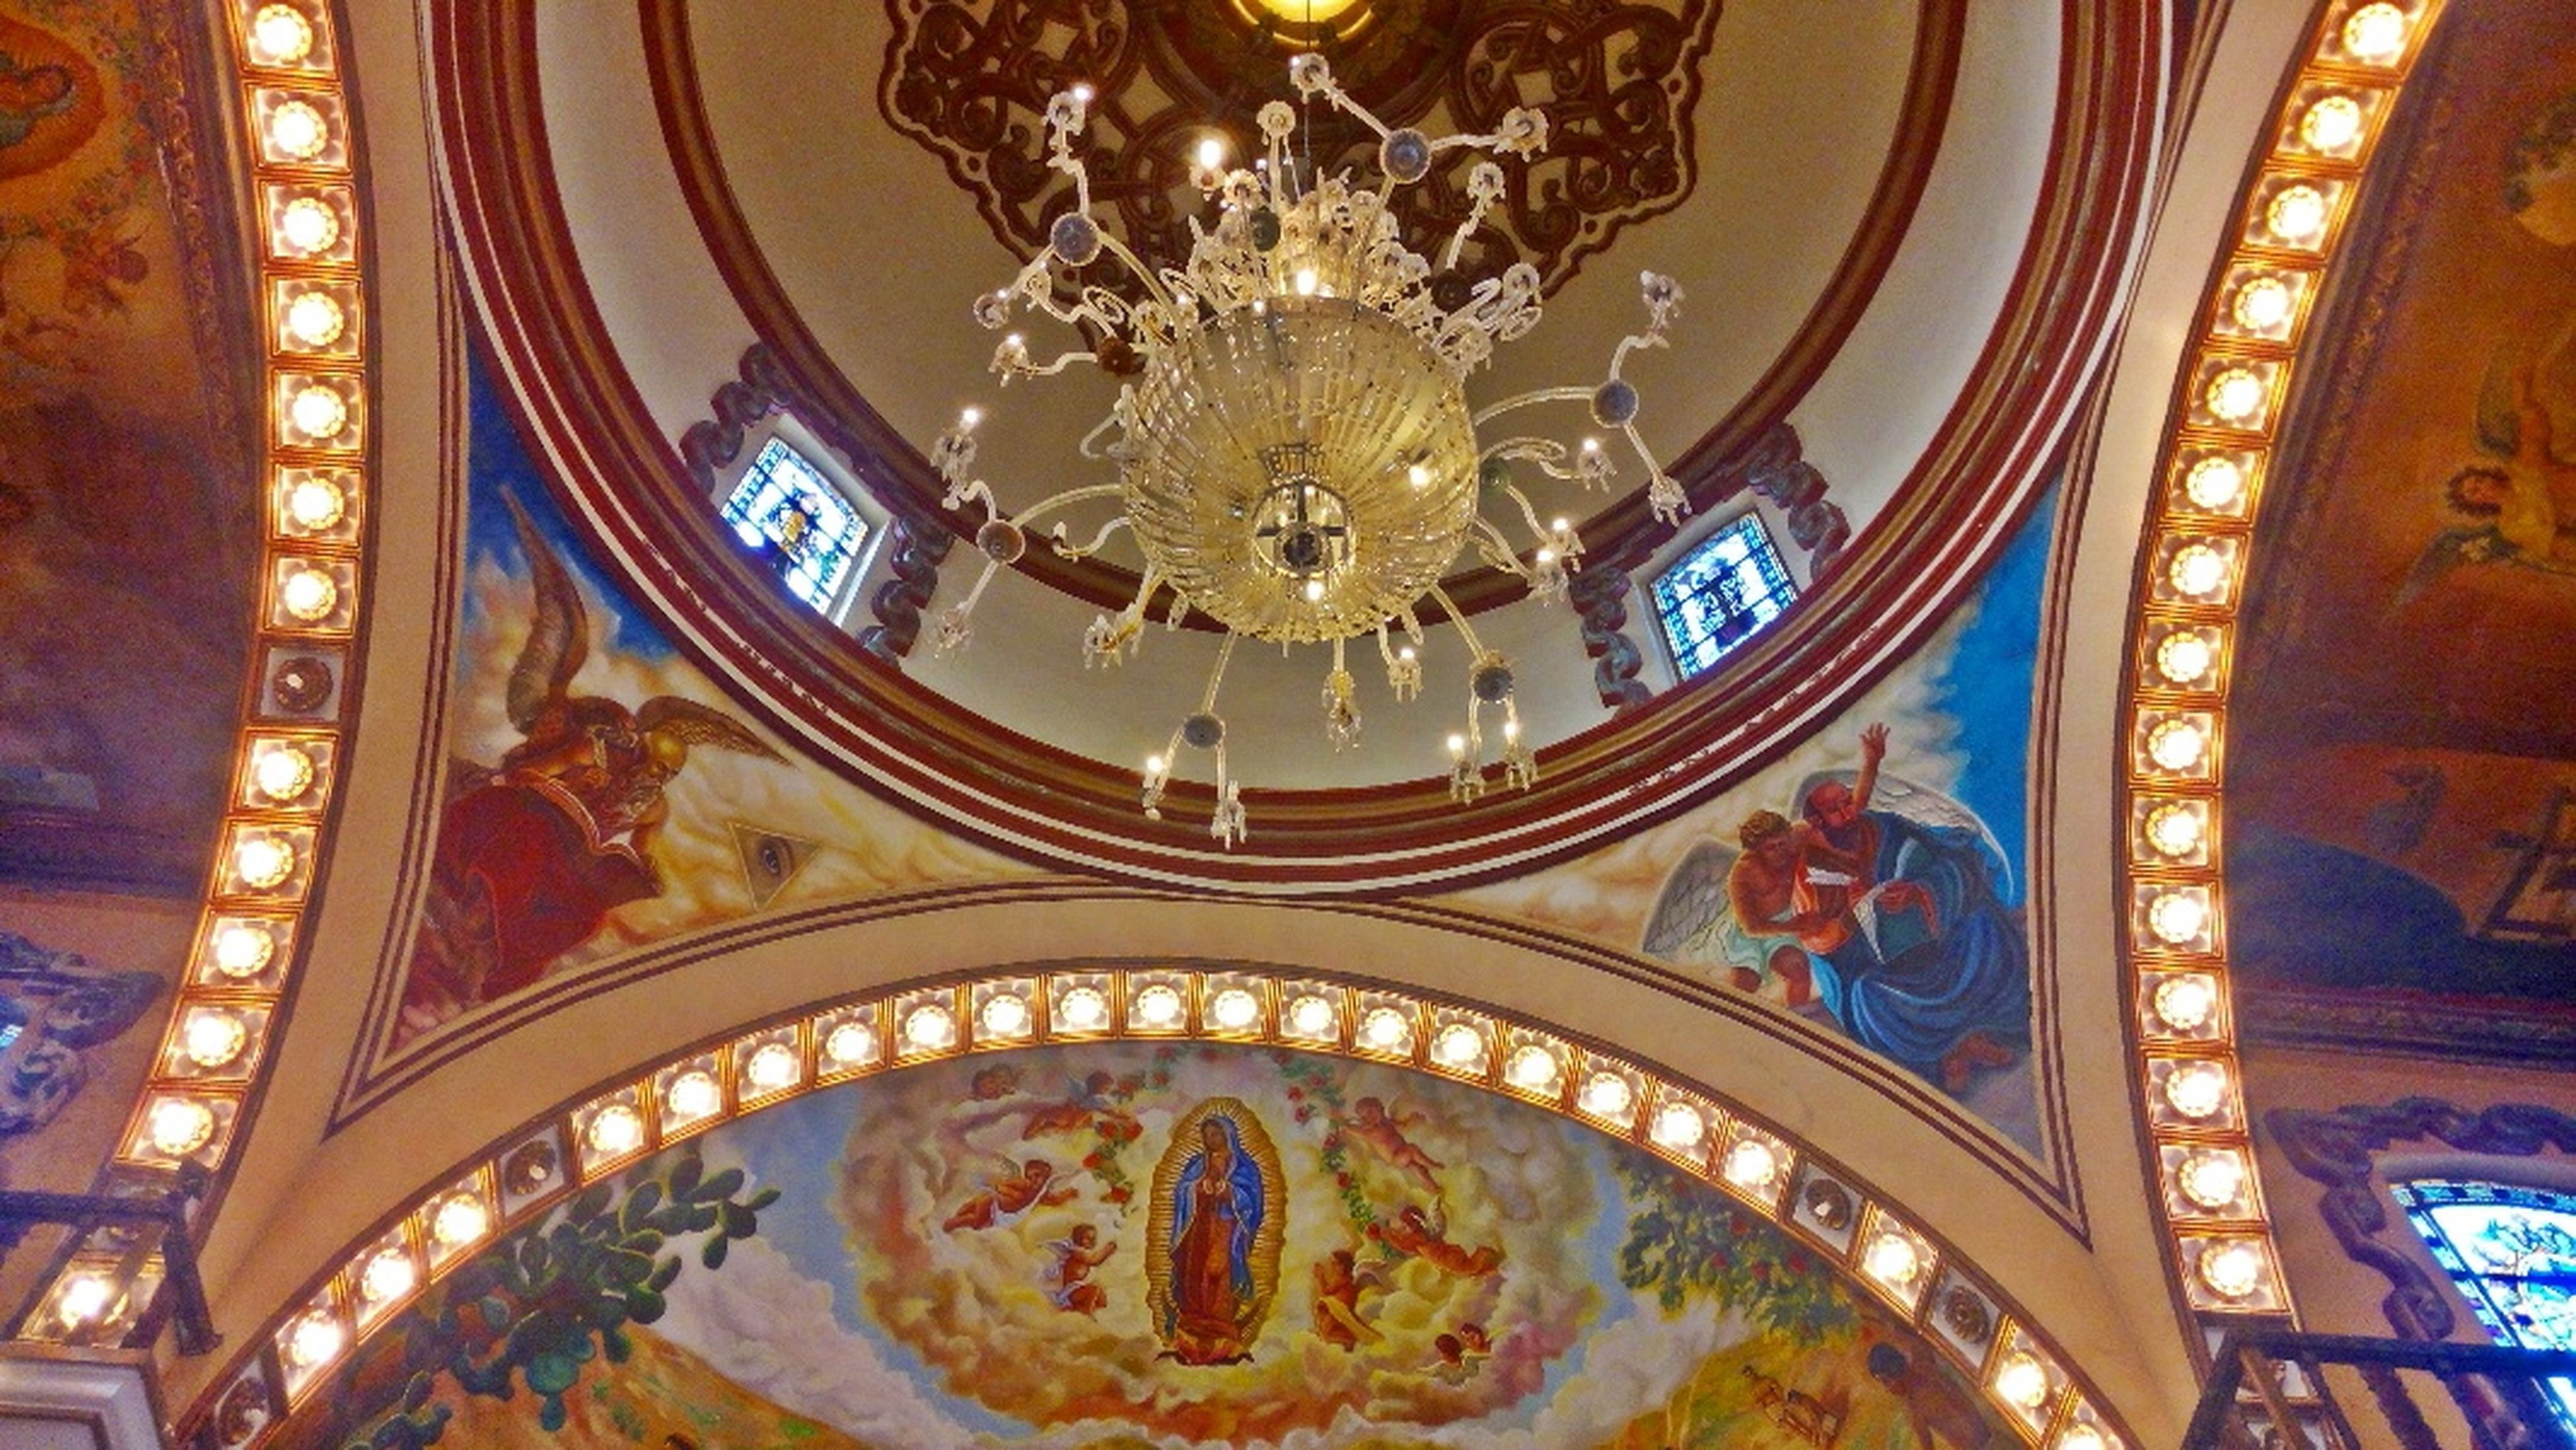 indoors, religion, ornate, place of worship, spirituality, art and craft, famous place, art, architecture, travel destinations, ceiling, creativity, design, tourism, built structure, international landmark, low angle view, carving - craft product, travel